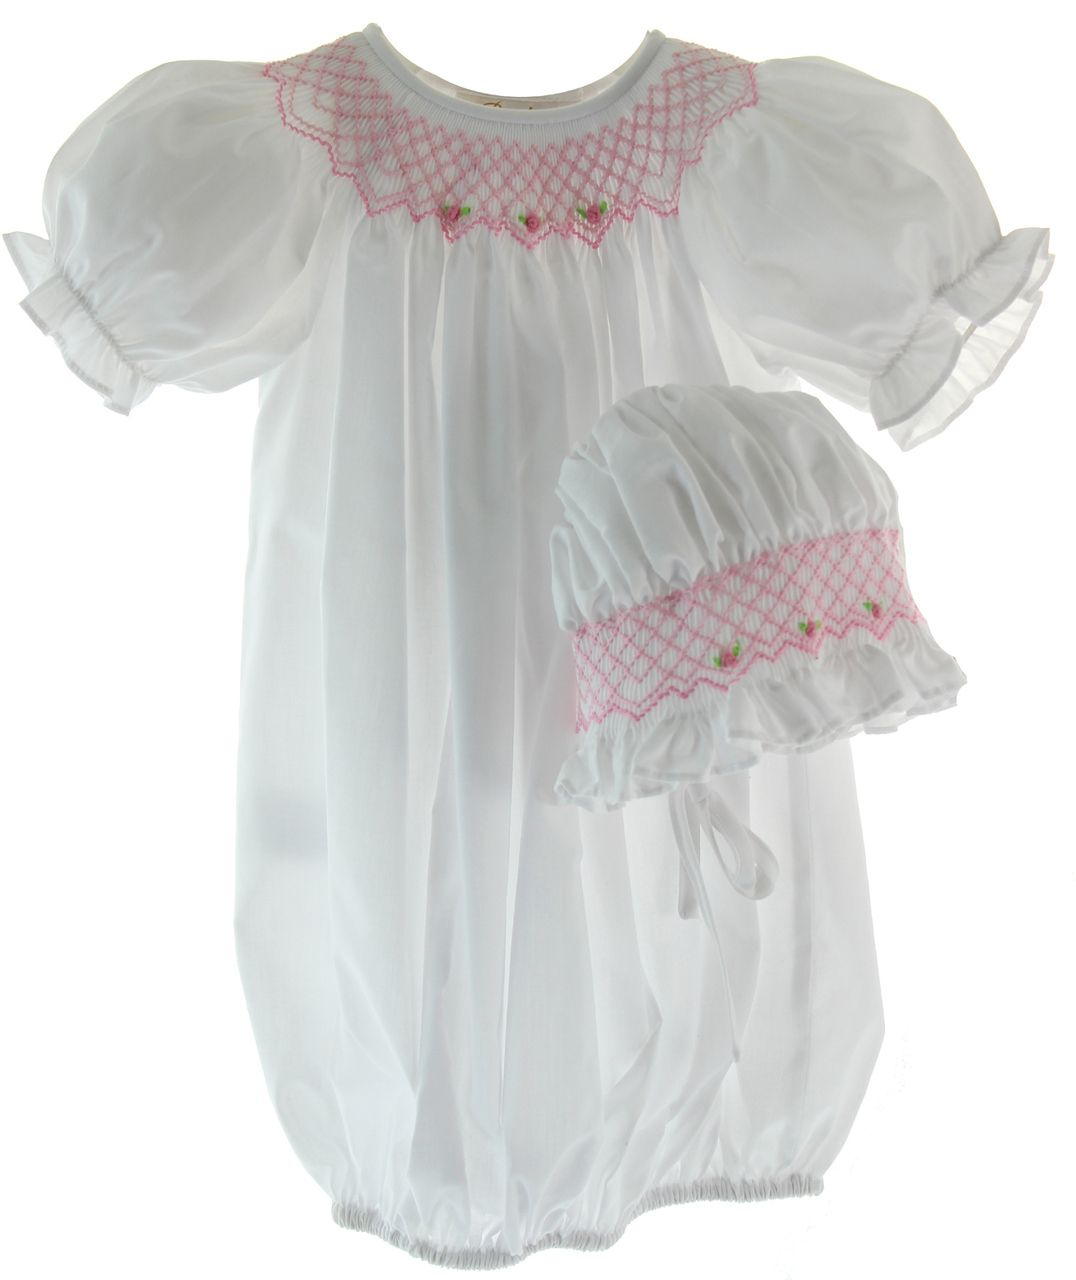 Baby Girls Gown Pink Take Home Outfit with Smocking